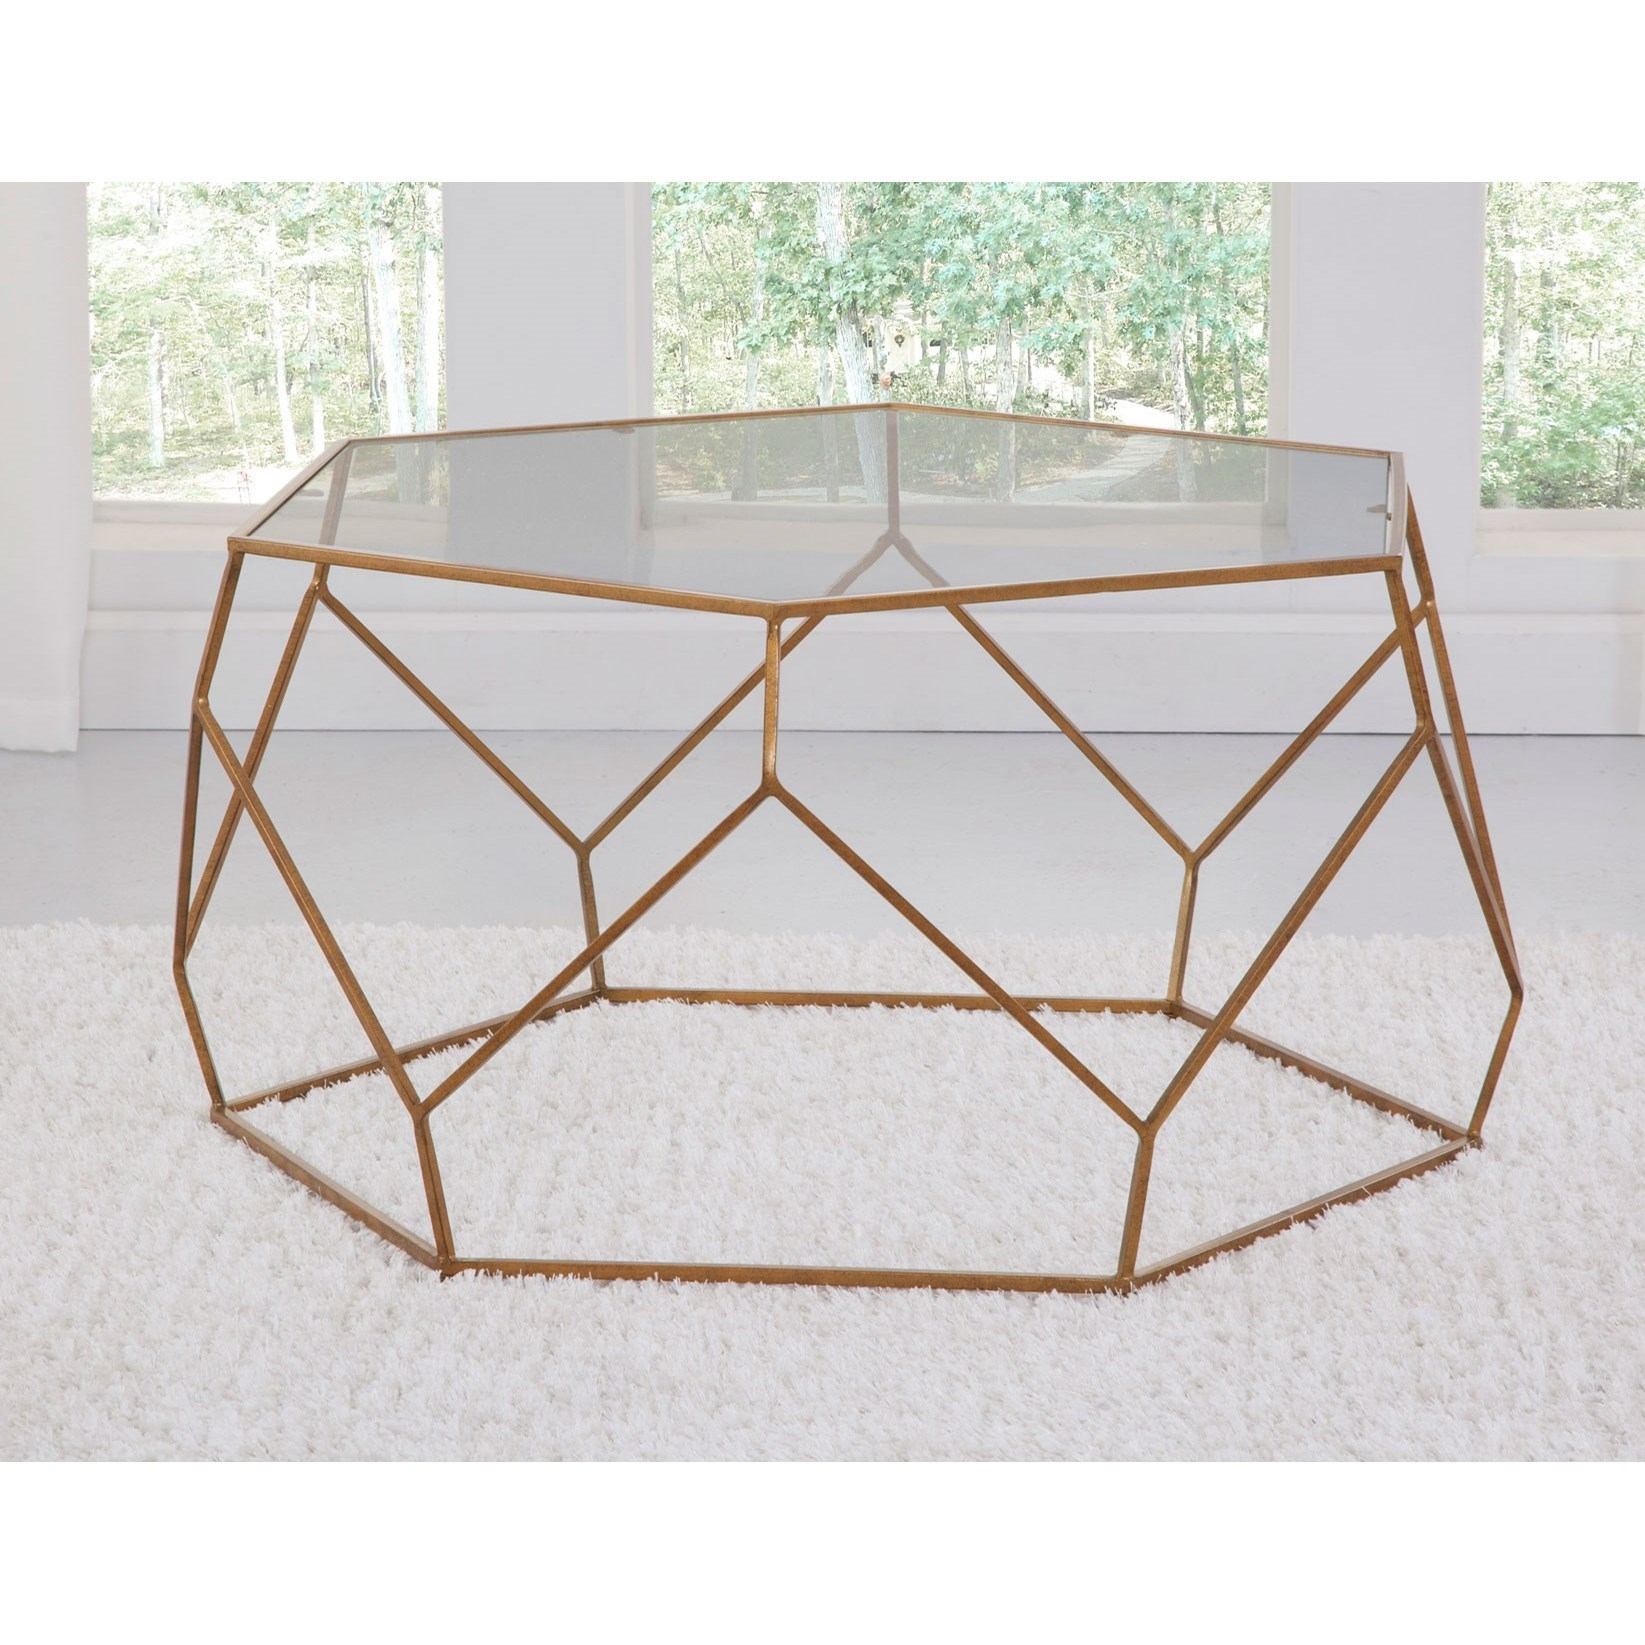 Roxy Cocktail Table by Steve Silver at Walker's Furniture